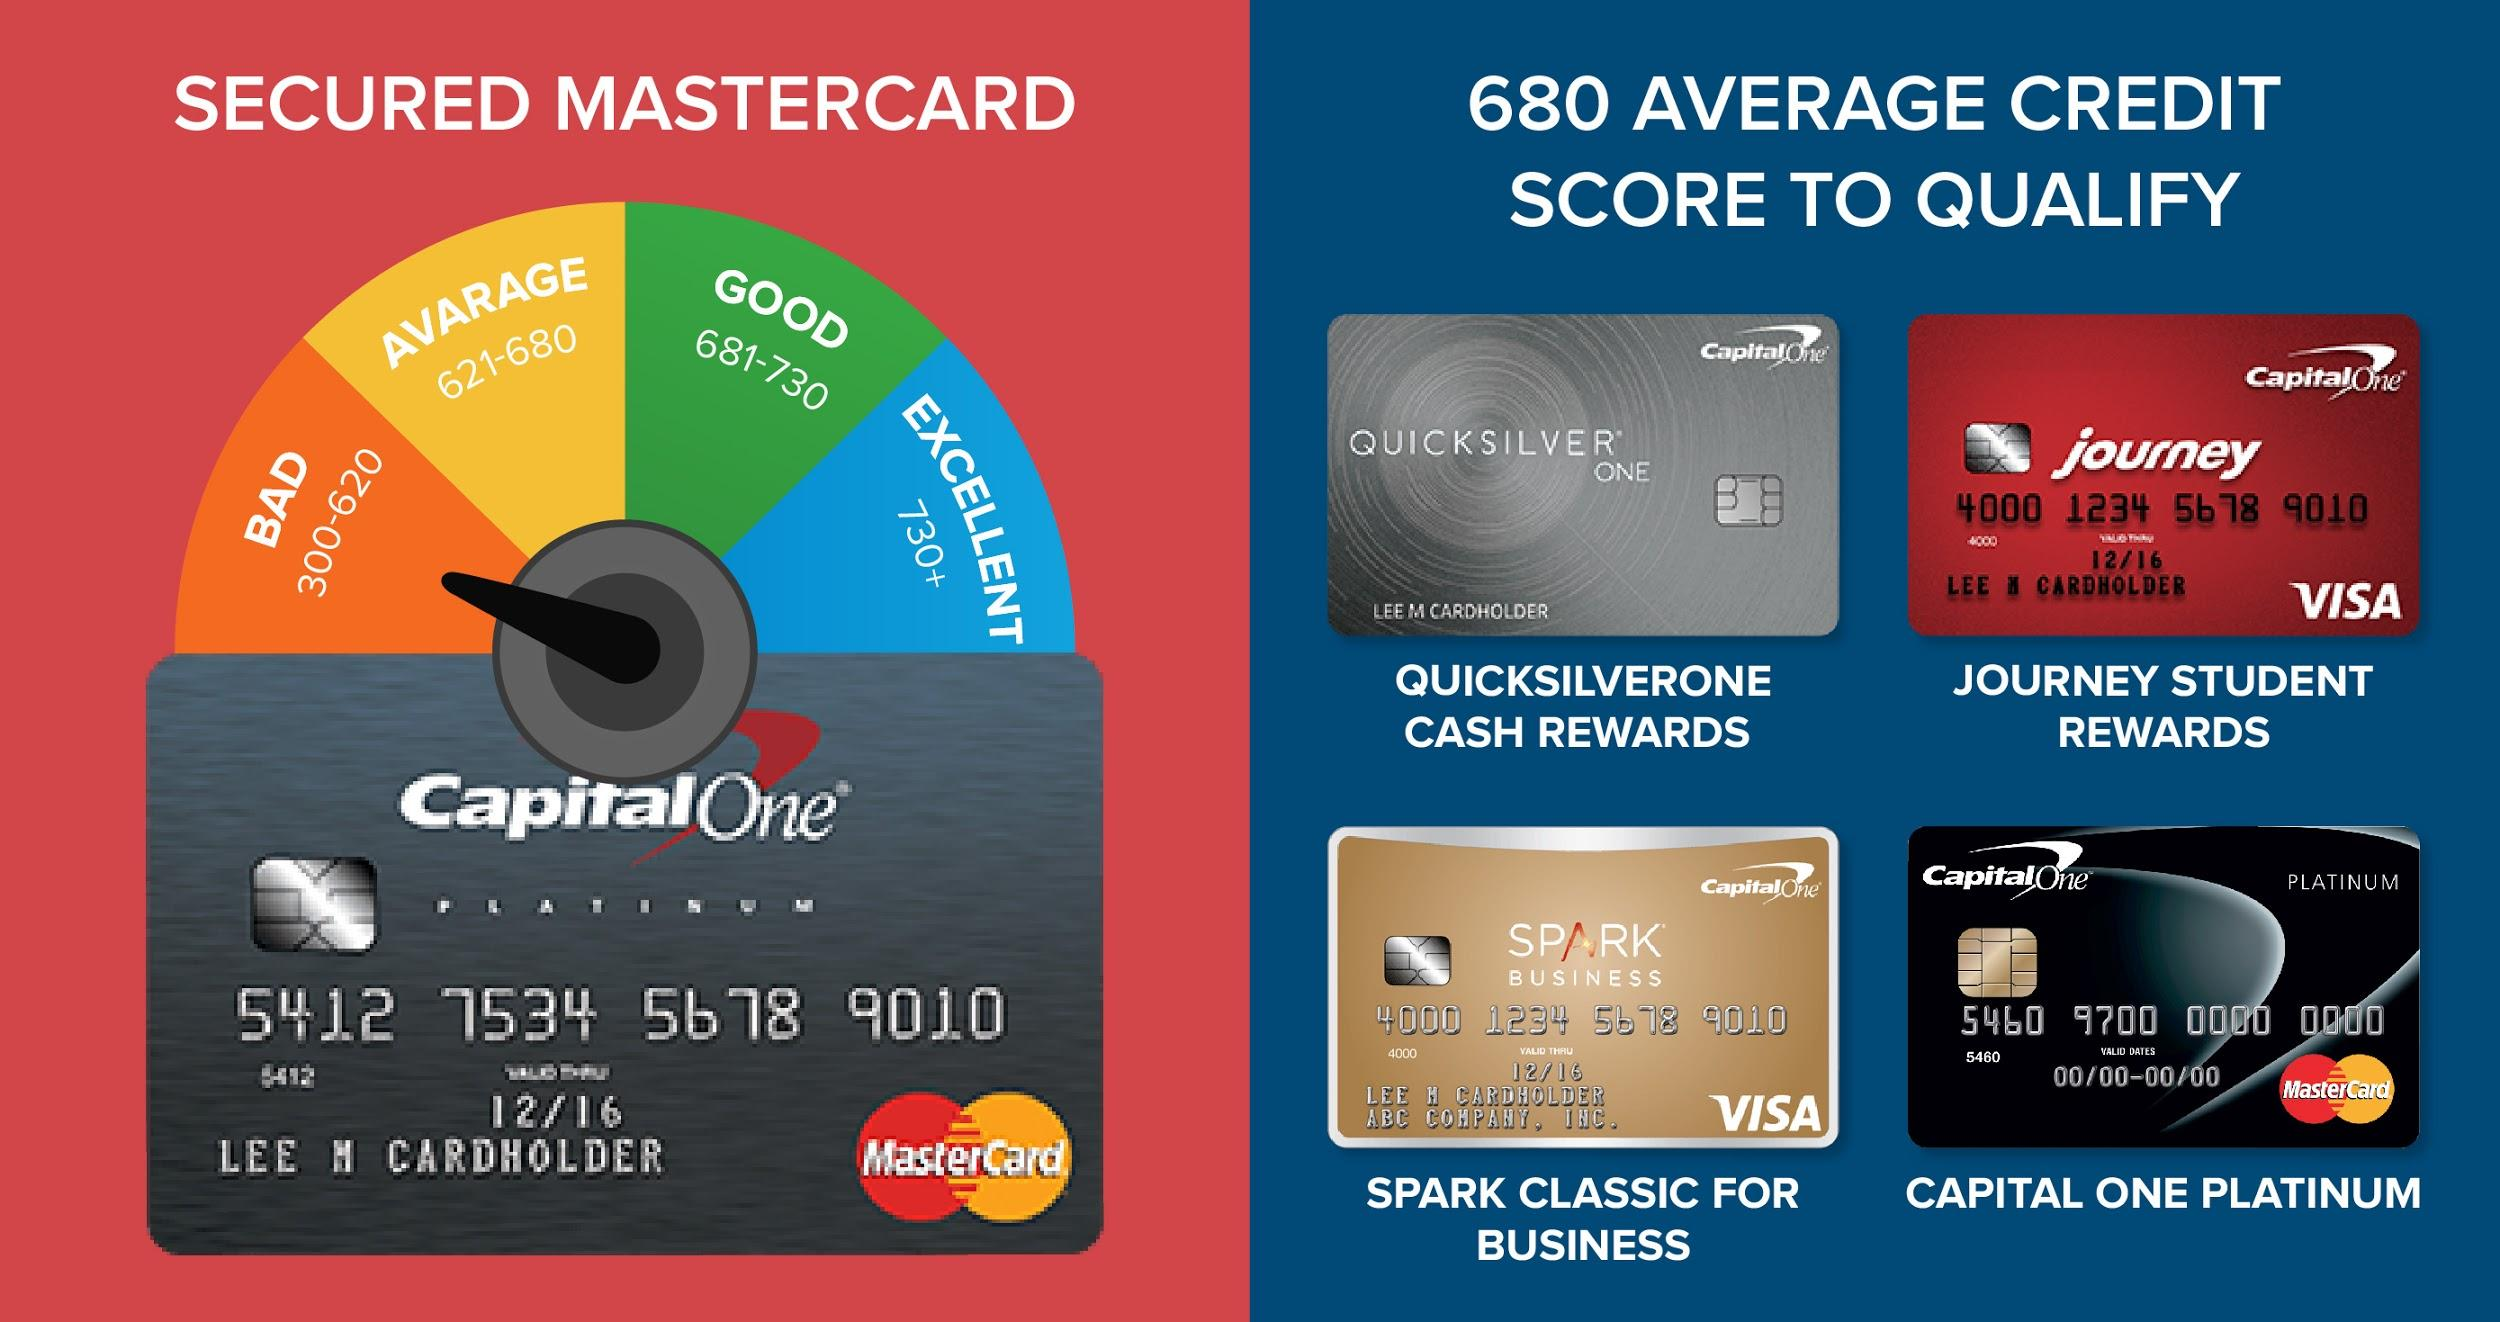 Credit scores and capital one what you need for each card what is the minimum credit score one should have before applying for any capital one card reheart Choice Image